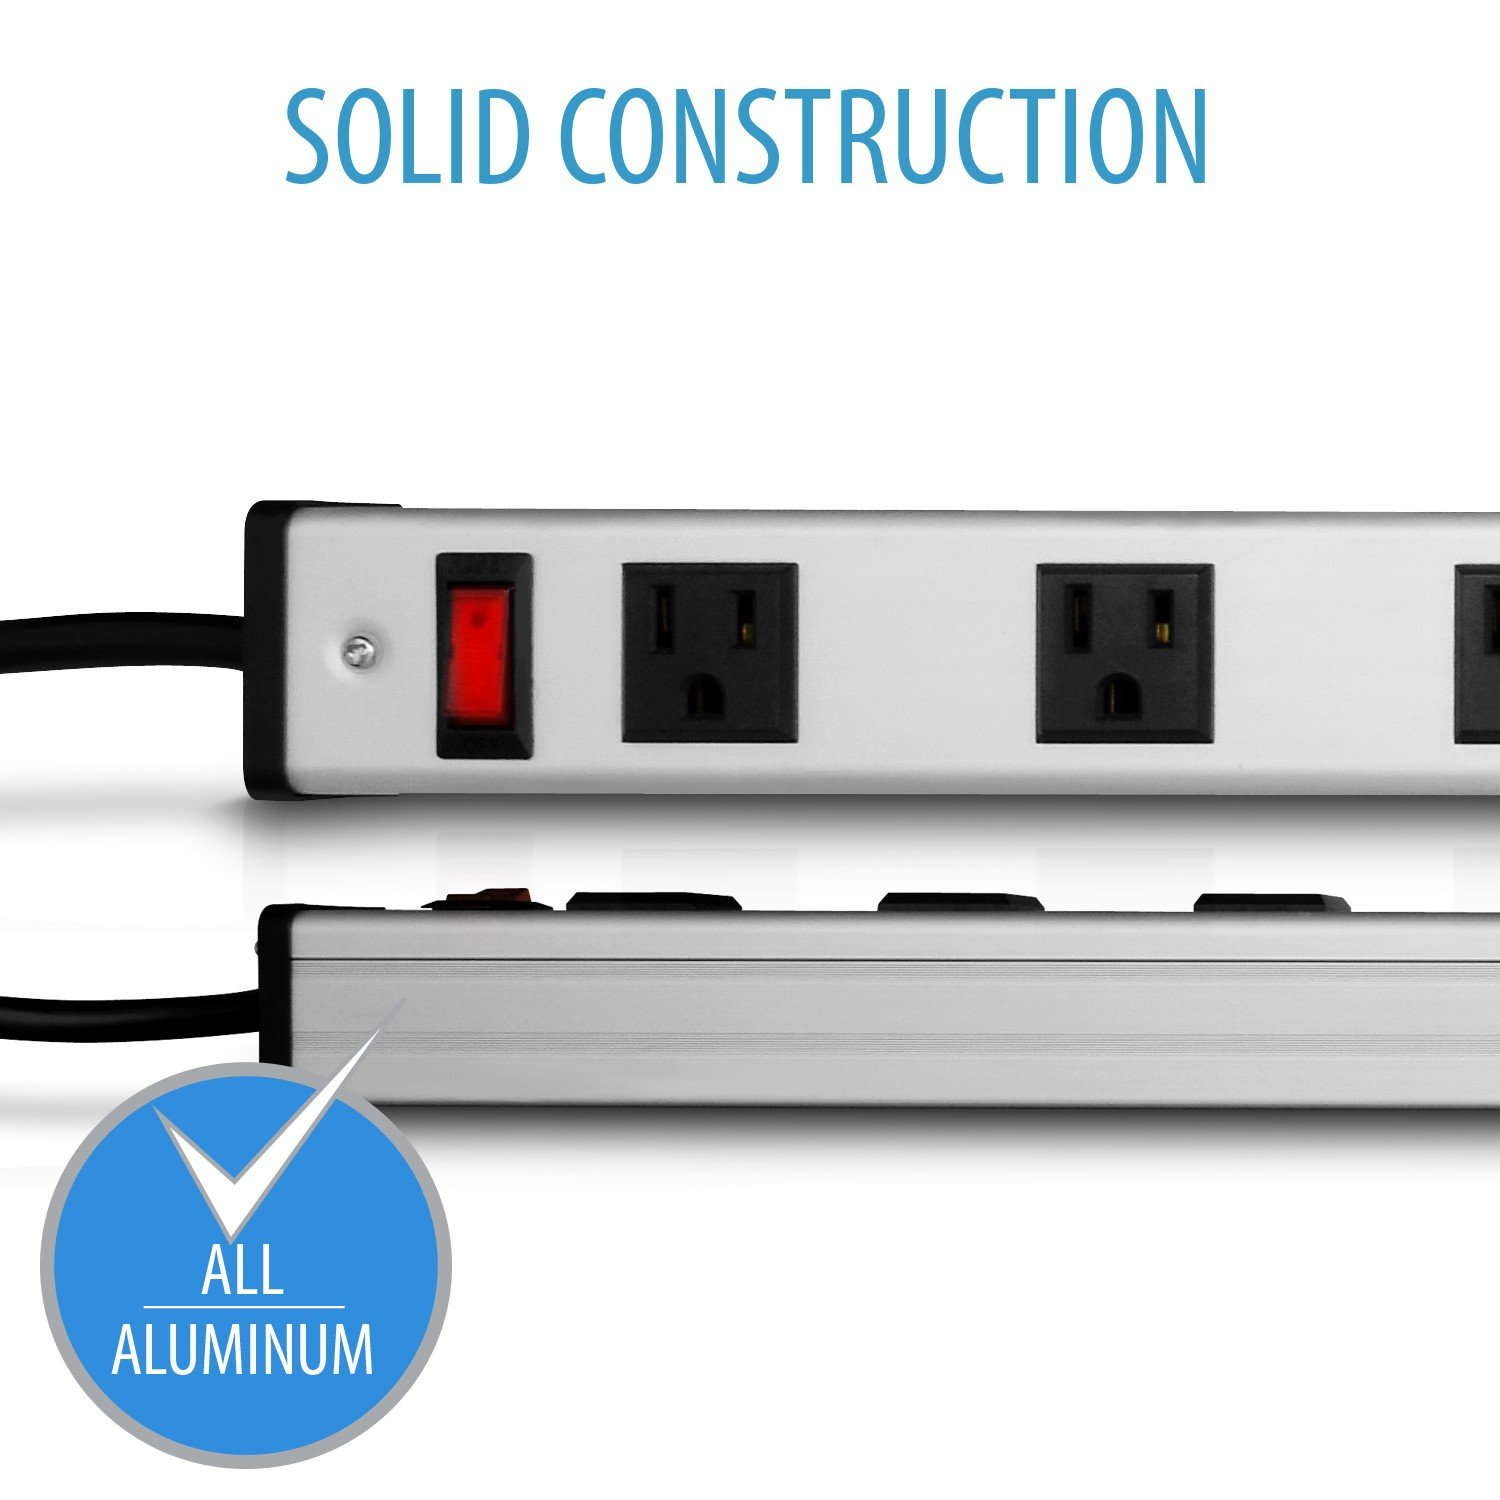 V7 PWS3312-1N 12-Outlet Horizontal Industrial Metal Power Strip 125V, 15A, 15-ft Cord, 5-15R